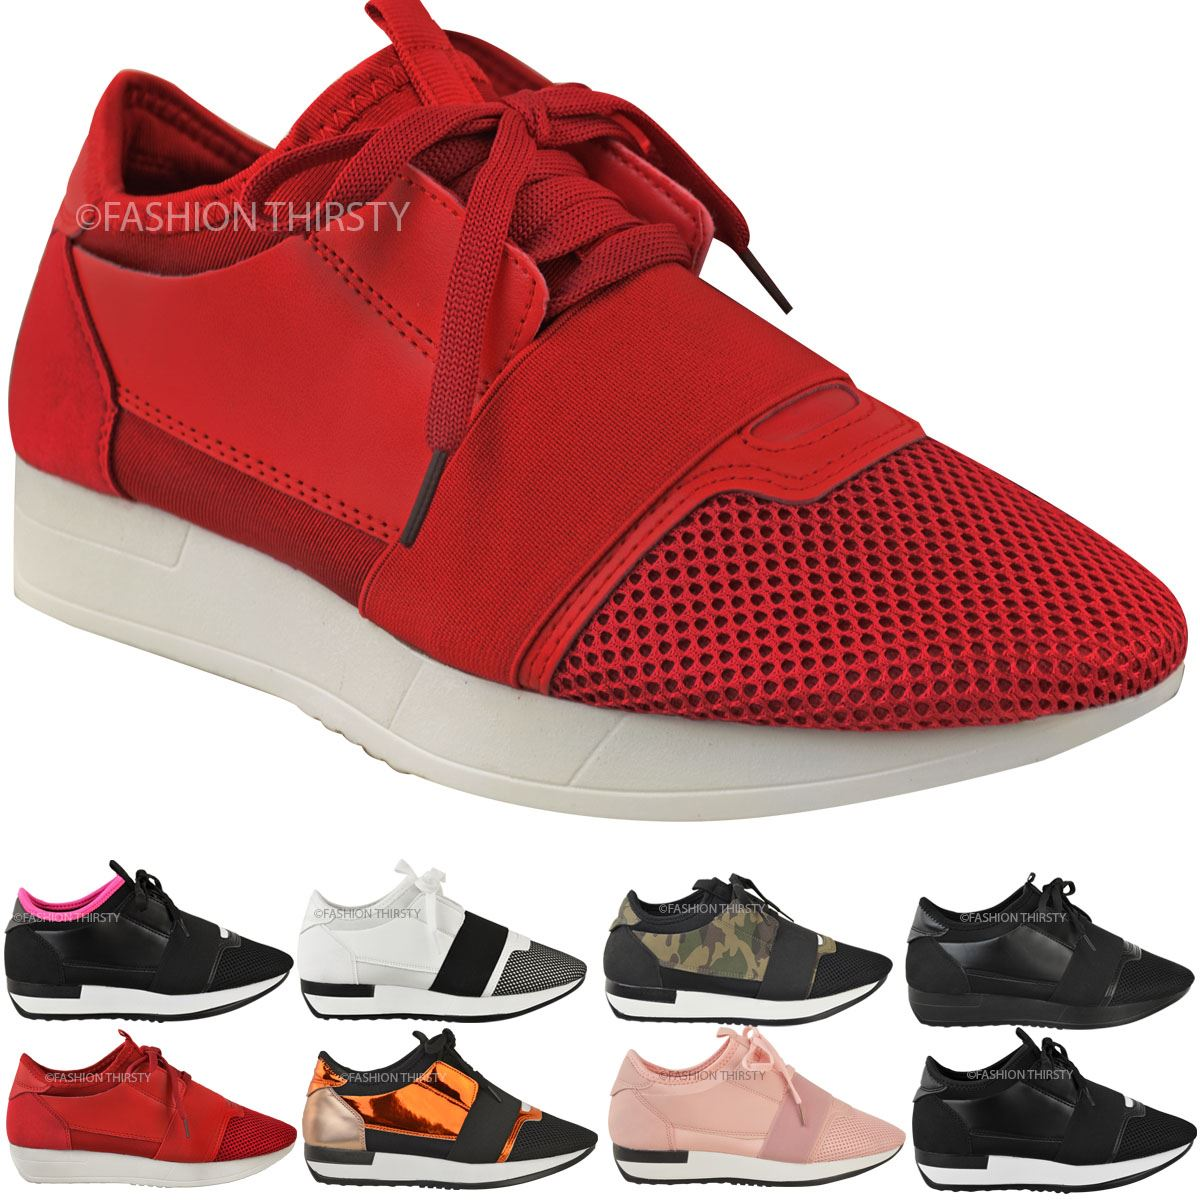 Beautiful Girls Platform Womens Round Toe Lace Up Trainer Sport Shoes Sneakers